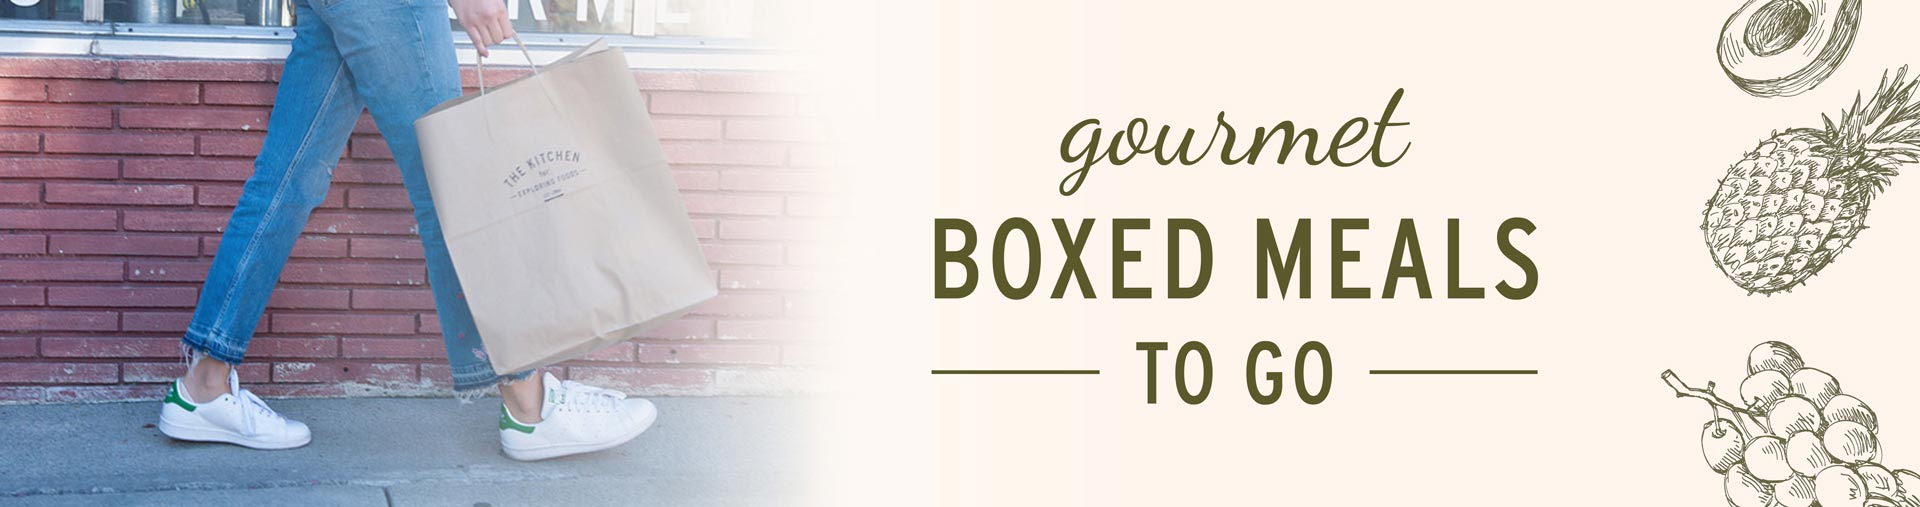 Gourmet To Go Boxed Meals